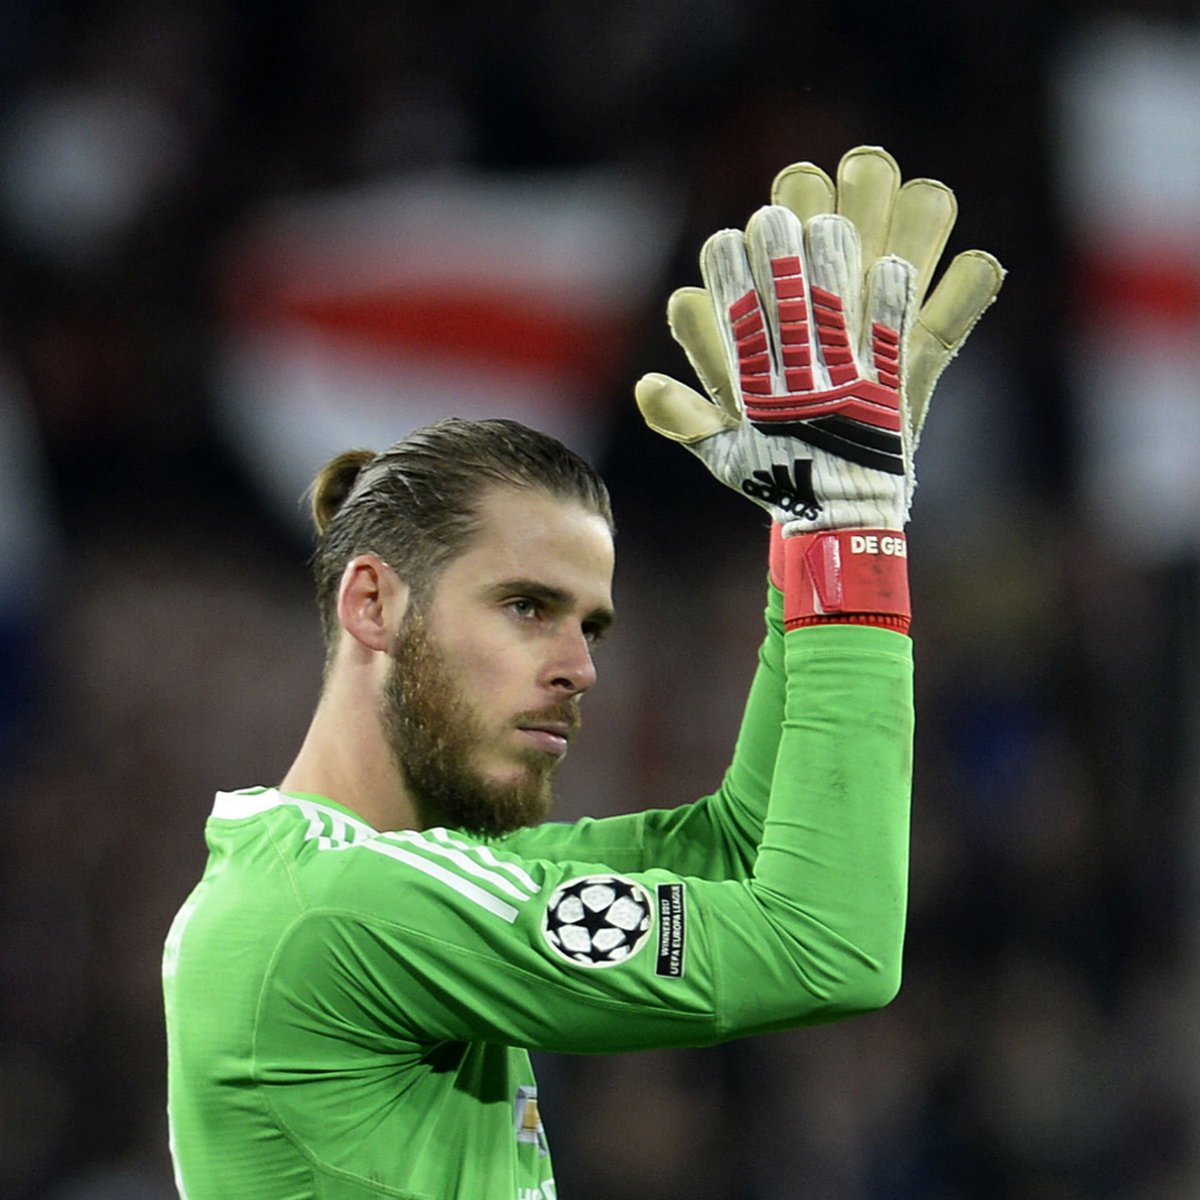 20 - David de Gea has saved 20/21 opposition shots that hes faced in the Champions League this season. He has only conceded one goal but Opta xG data suggests that the average goalkeeper would have conceded five goals from these shots. Superhuman. #MUNSEV